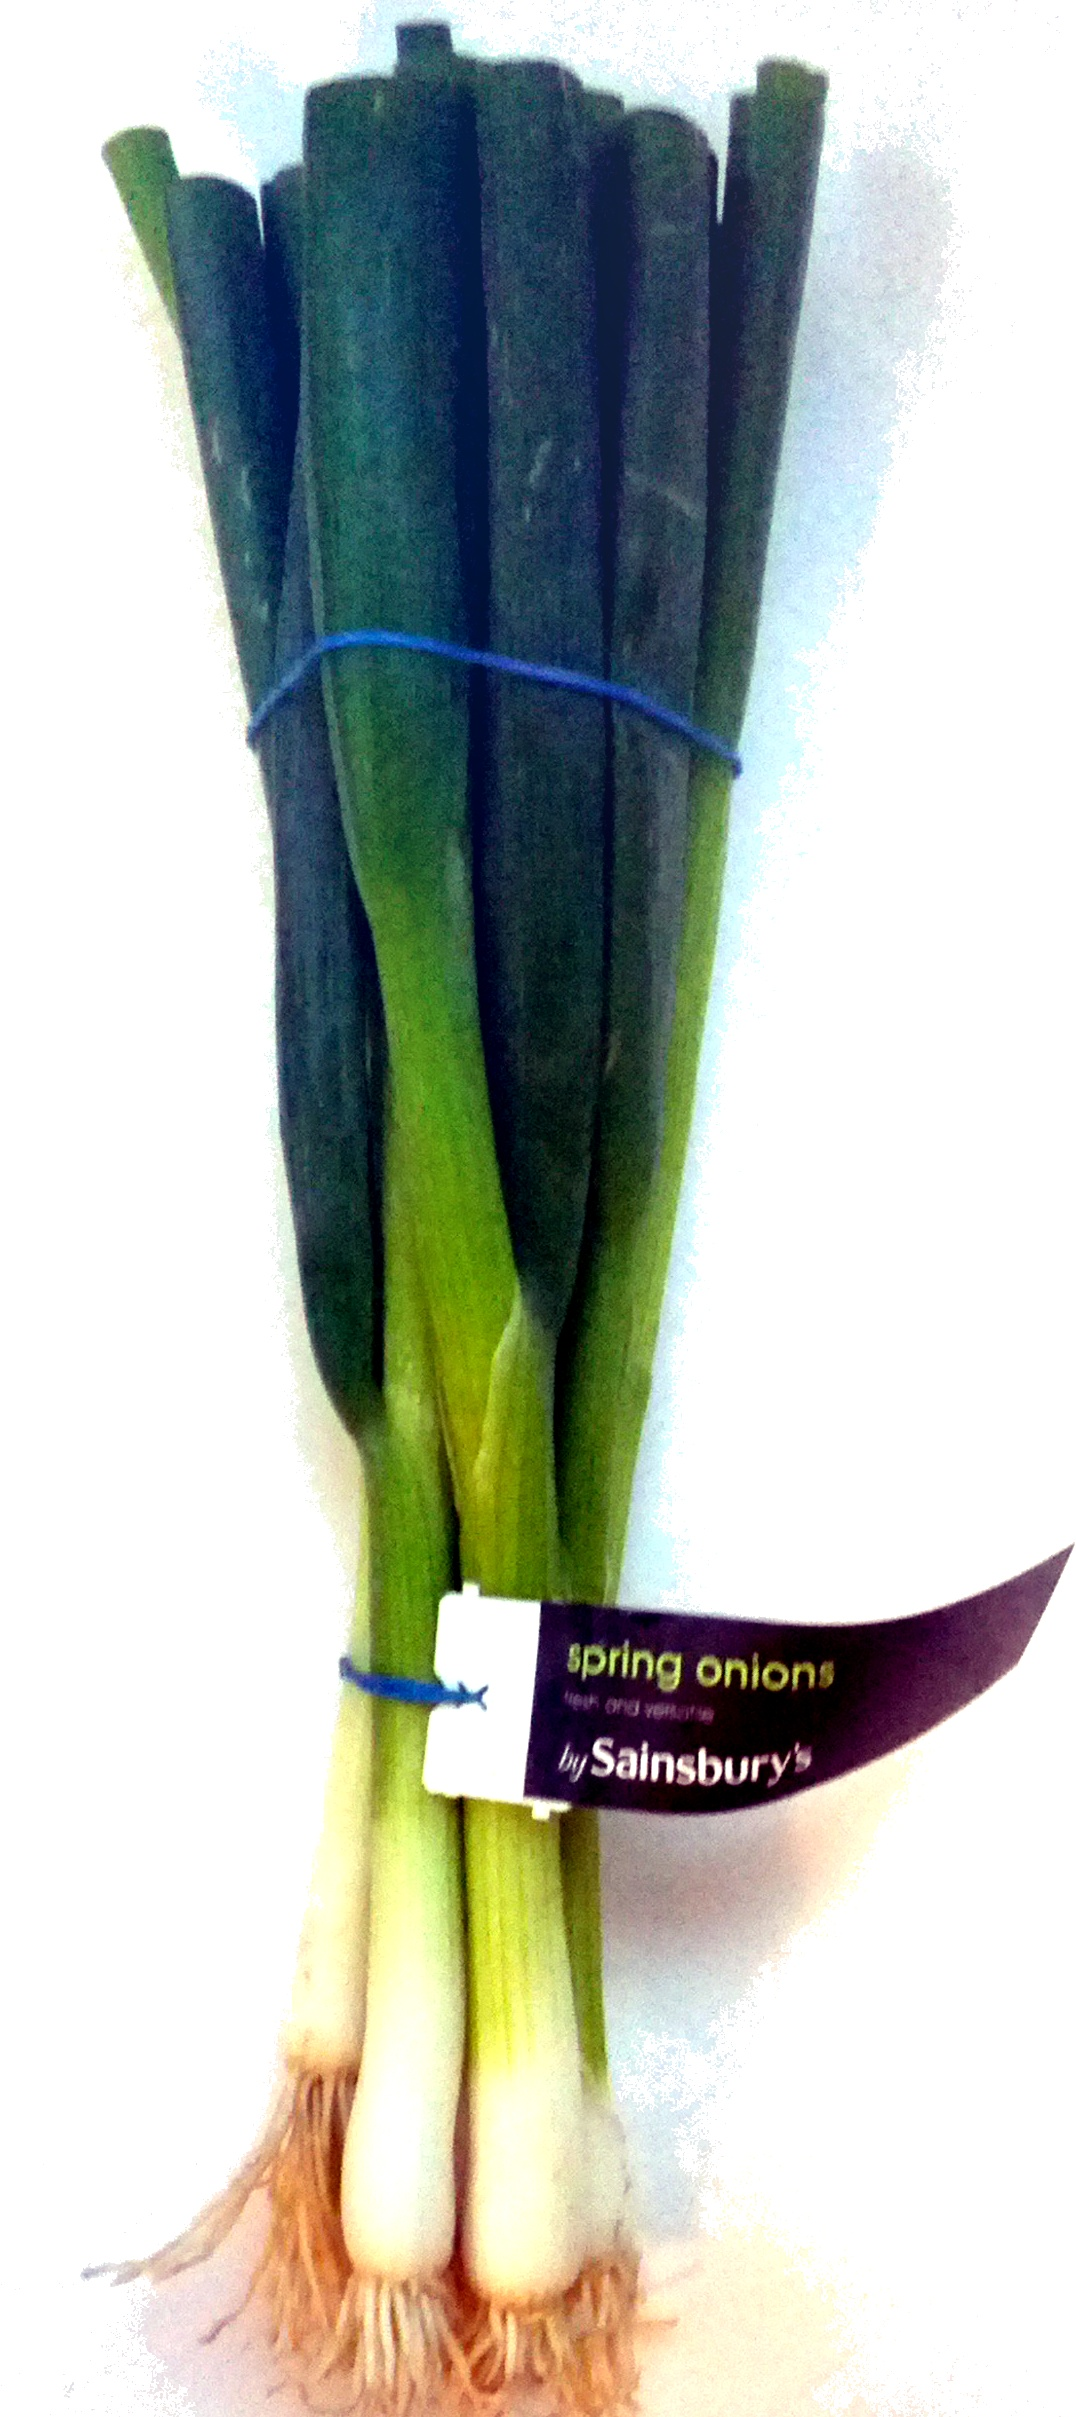 Spring Onions - Product